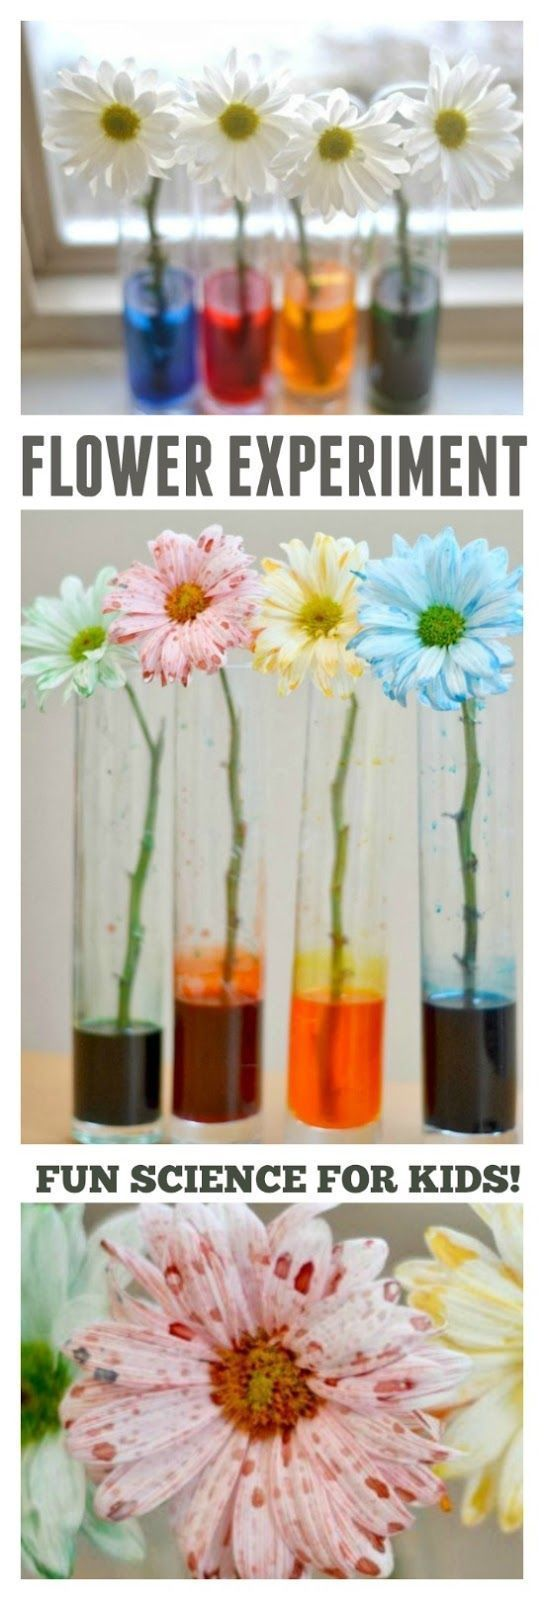 FLOWER EXPERIENCE FOR CHILDREN Science for fun!